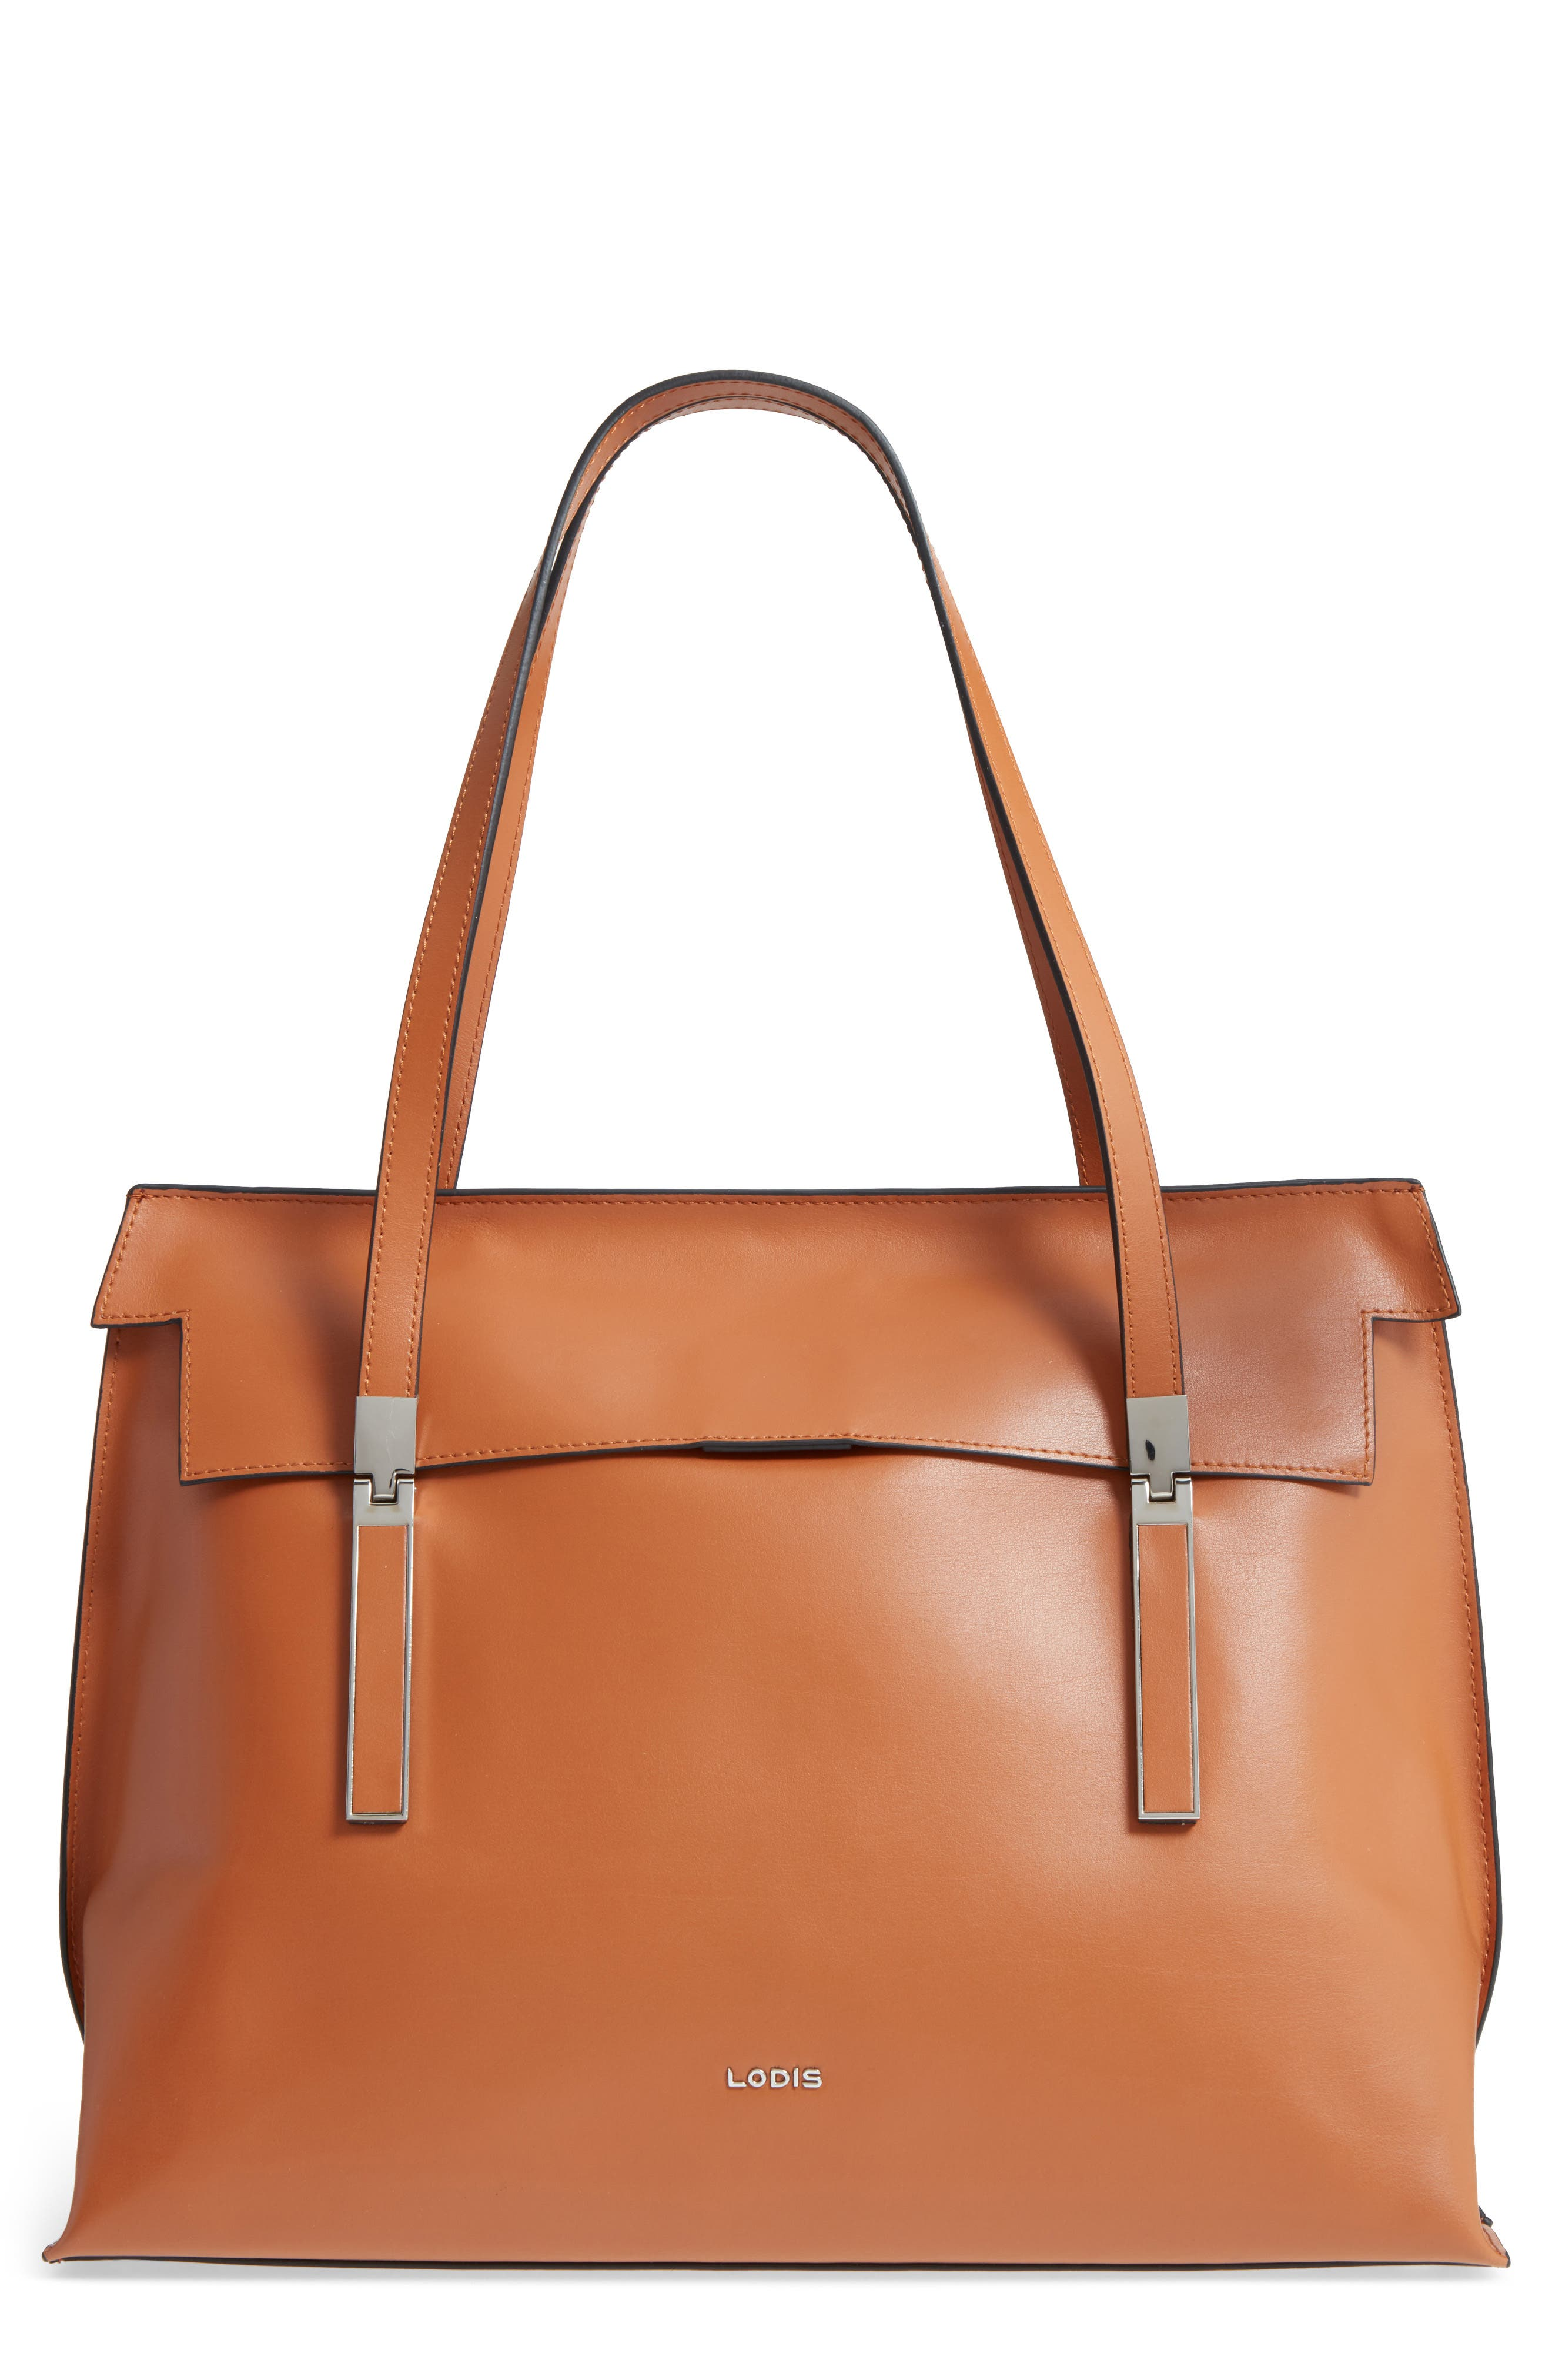 LODIS Silicon Valley - Lorrain RFID Leather Satchel,                         Main,                         color, Toffee/ Taupe